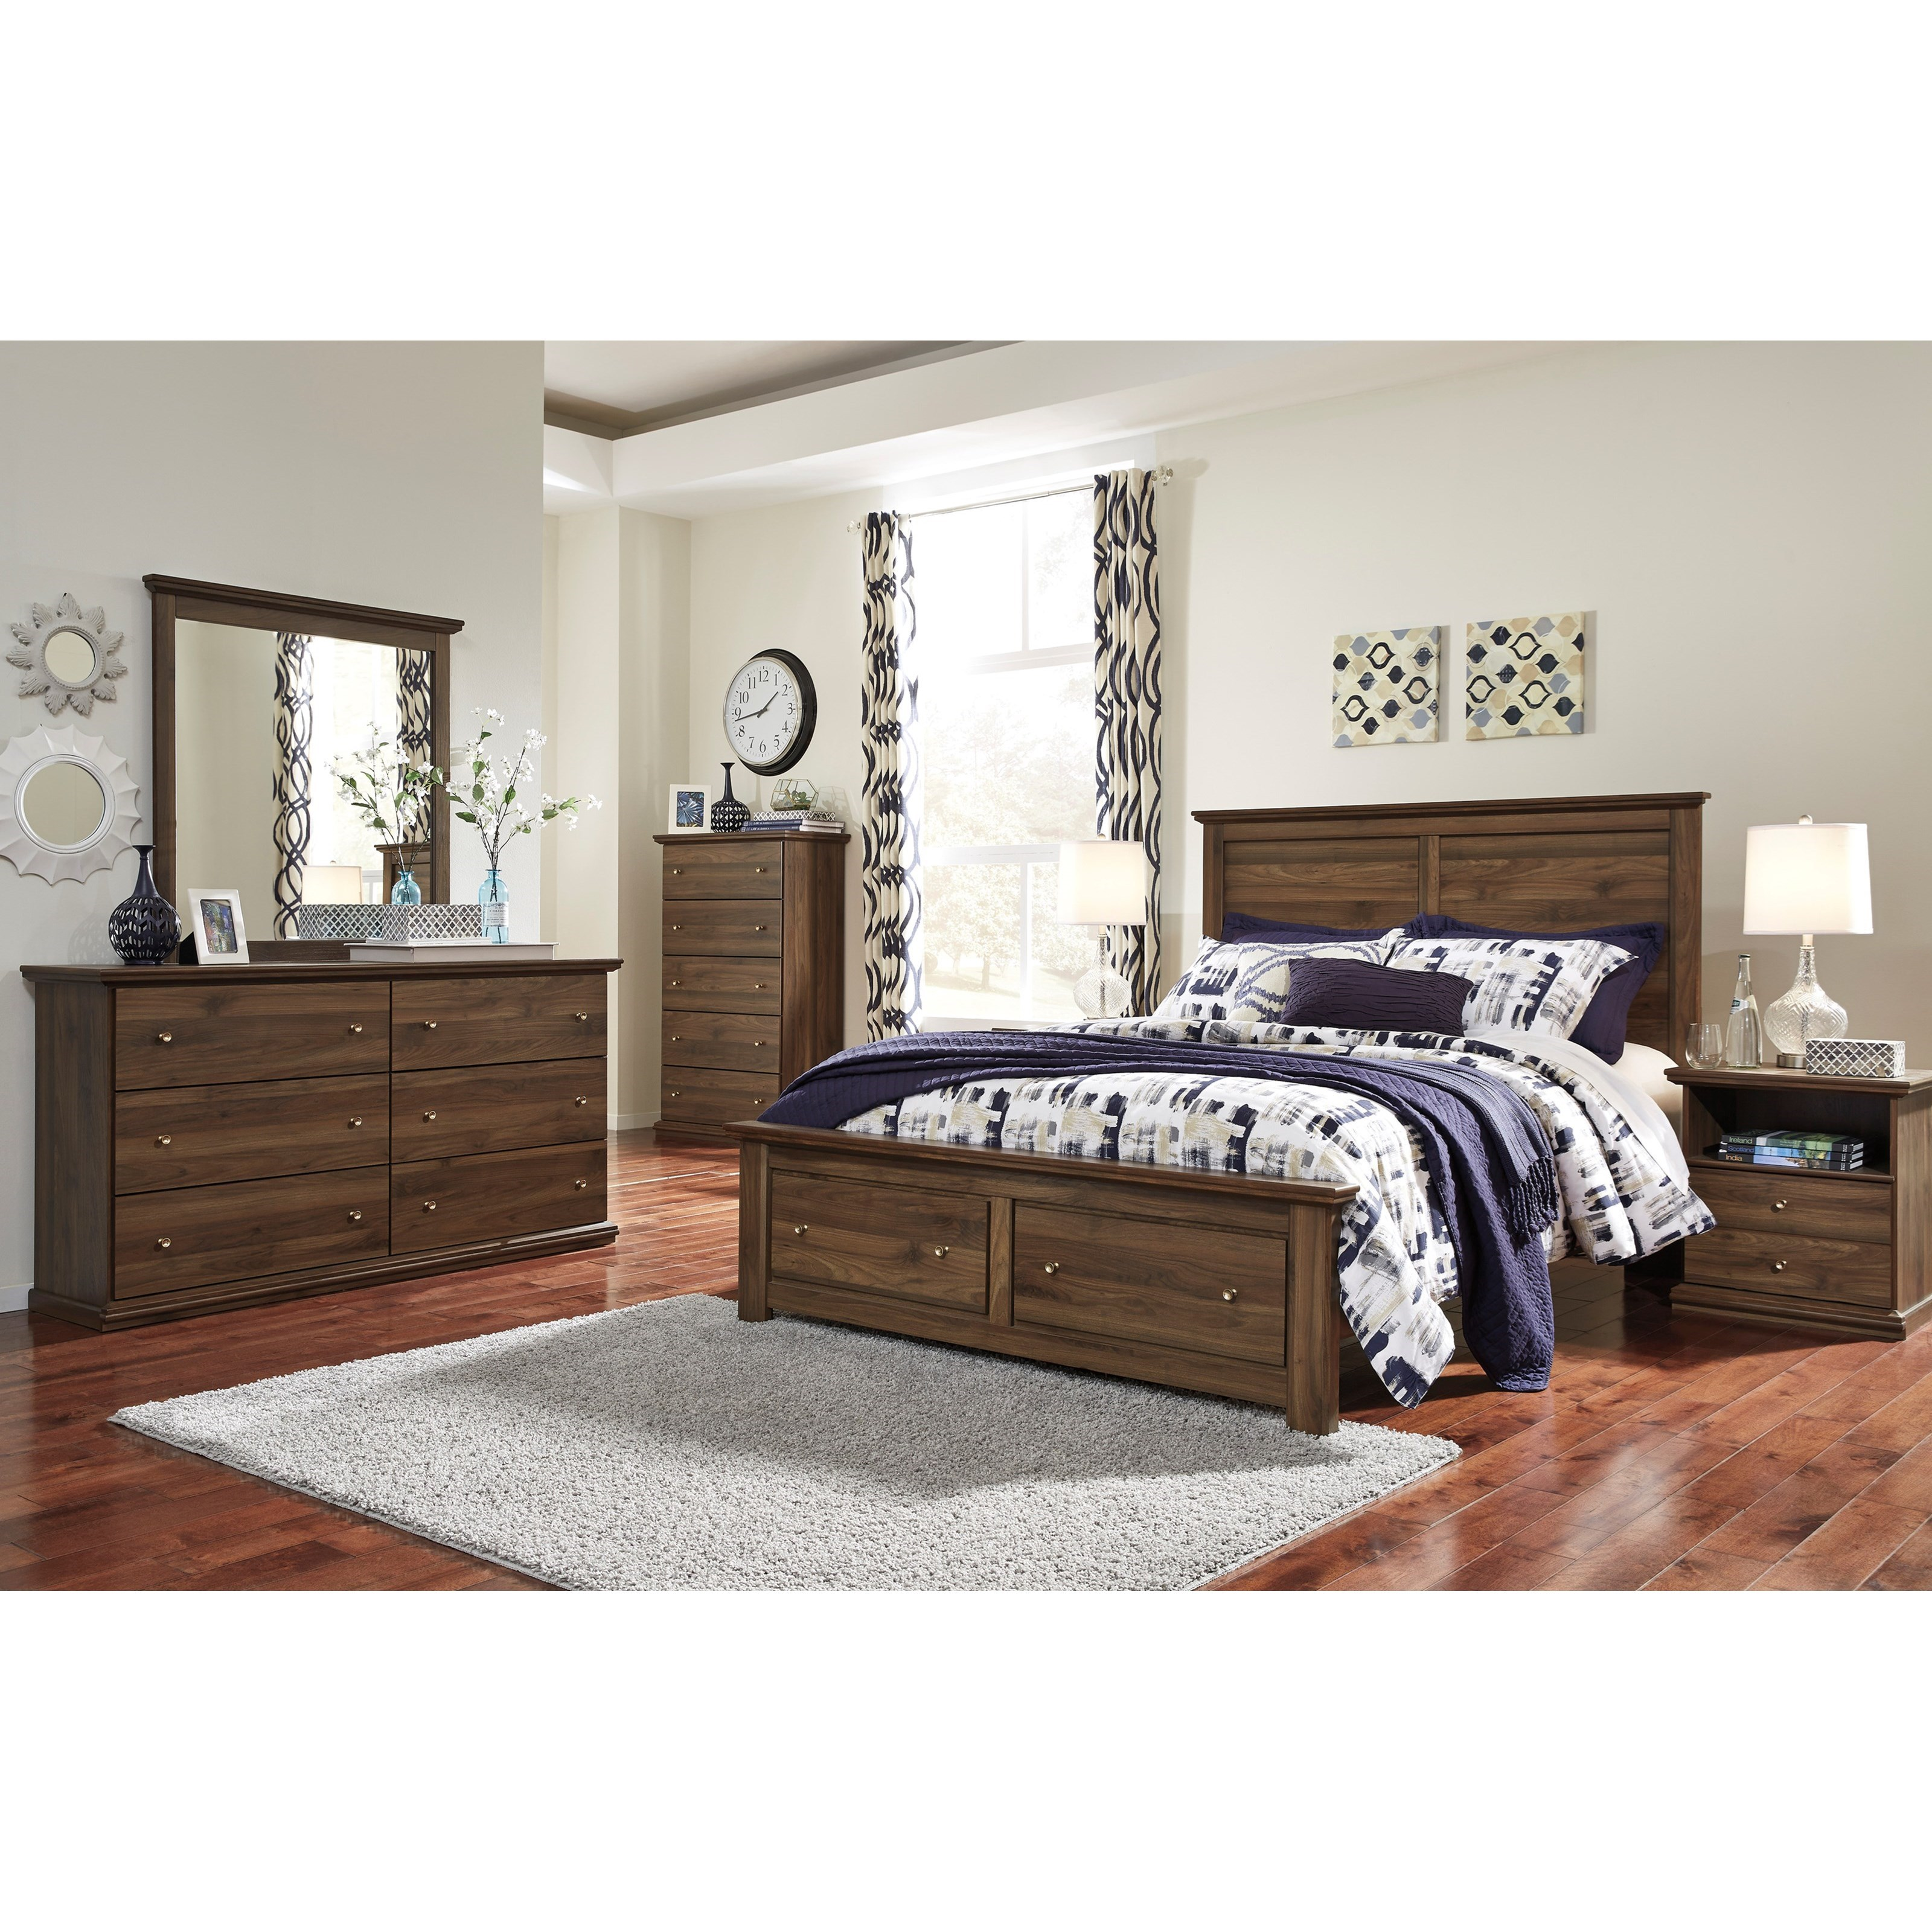 Signature Design by Ashley Burminson Queen Bedroom Group - Item Number: B135 Q Bedroom Group 2